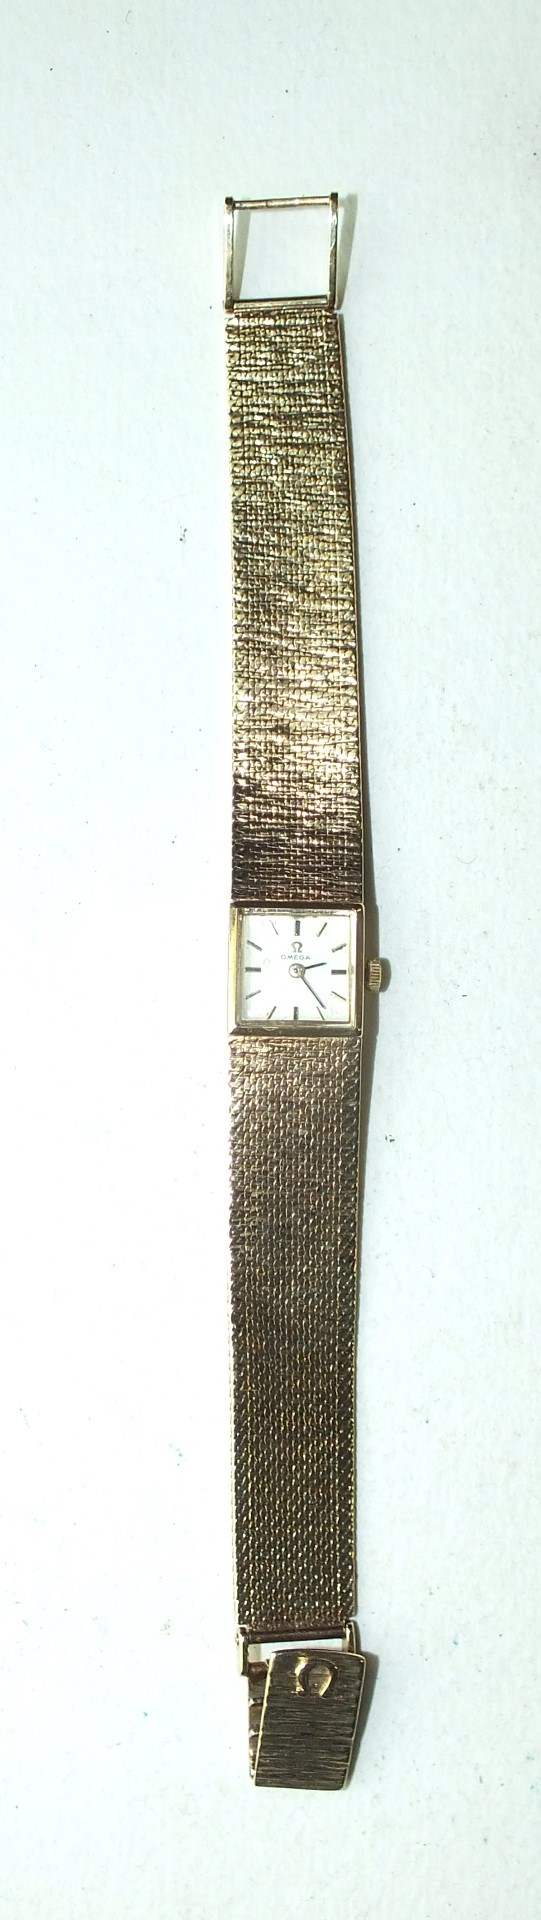 Lot 260 - Omega, a ladies 9ct gold wrist watch c1960's, the square dial with baton numerals, on slightly-